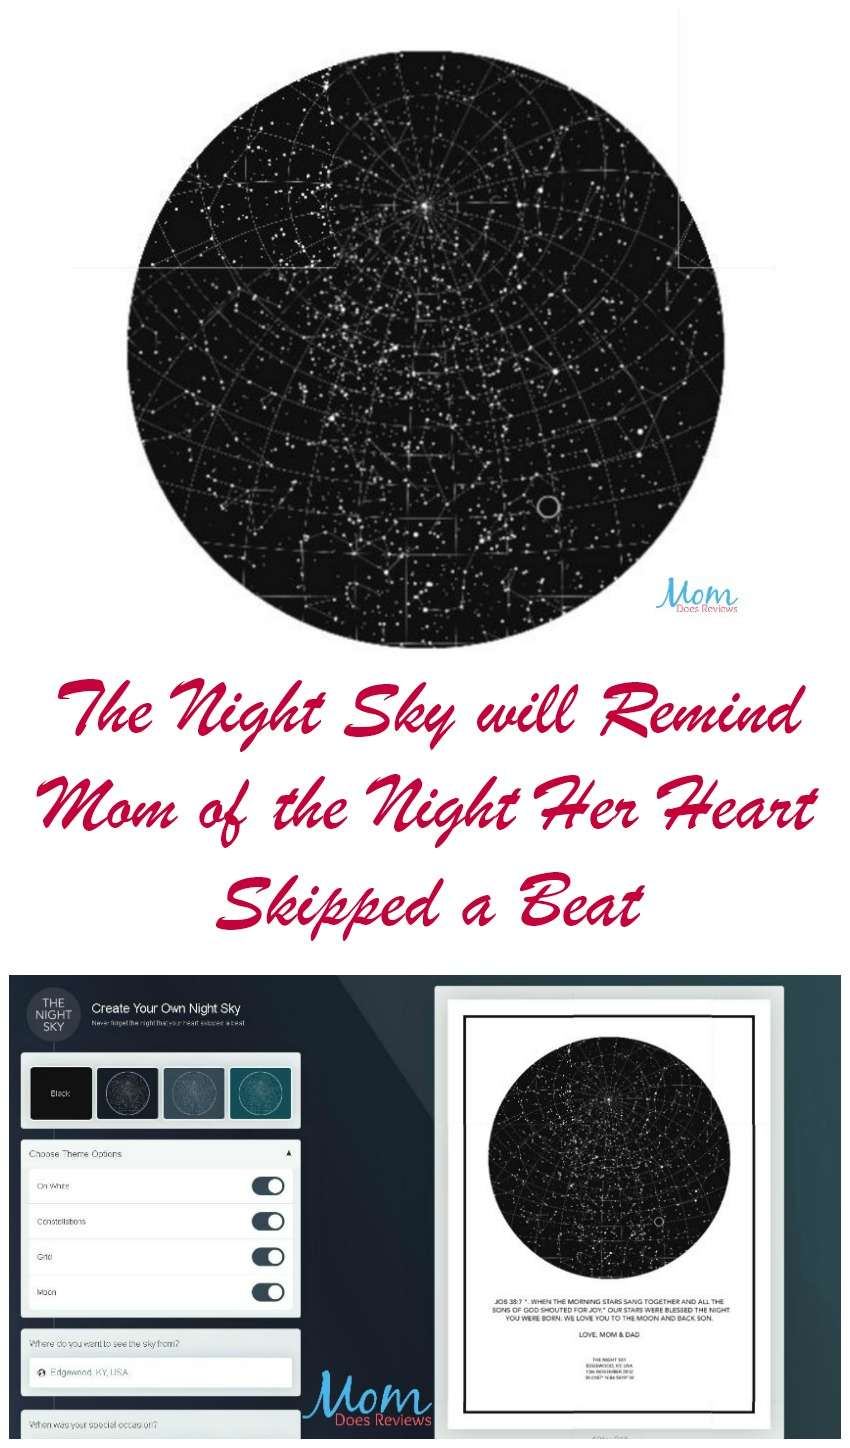 The Night Sky will Remind Mom of the Night Her Heart Skipped a Beat